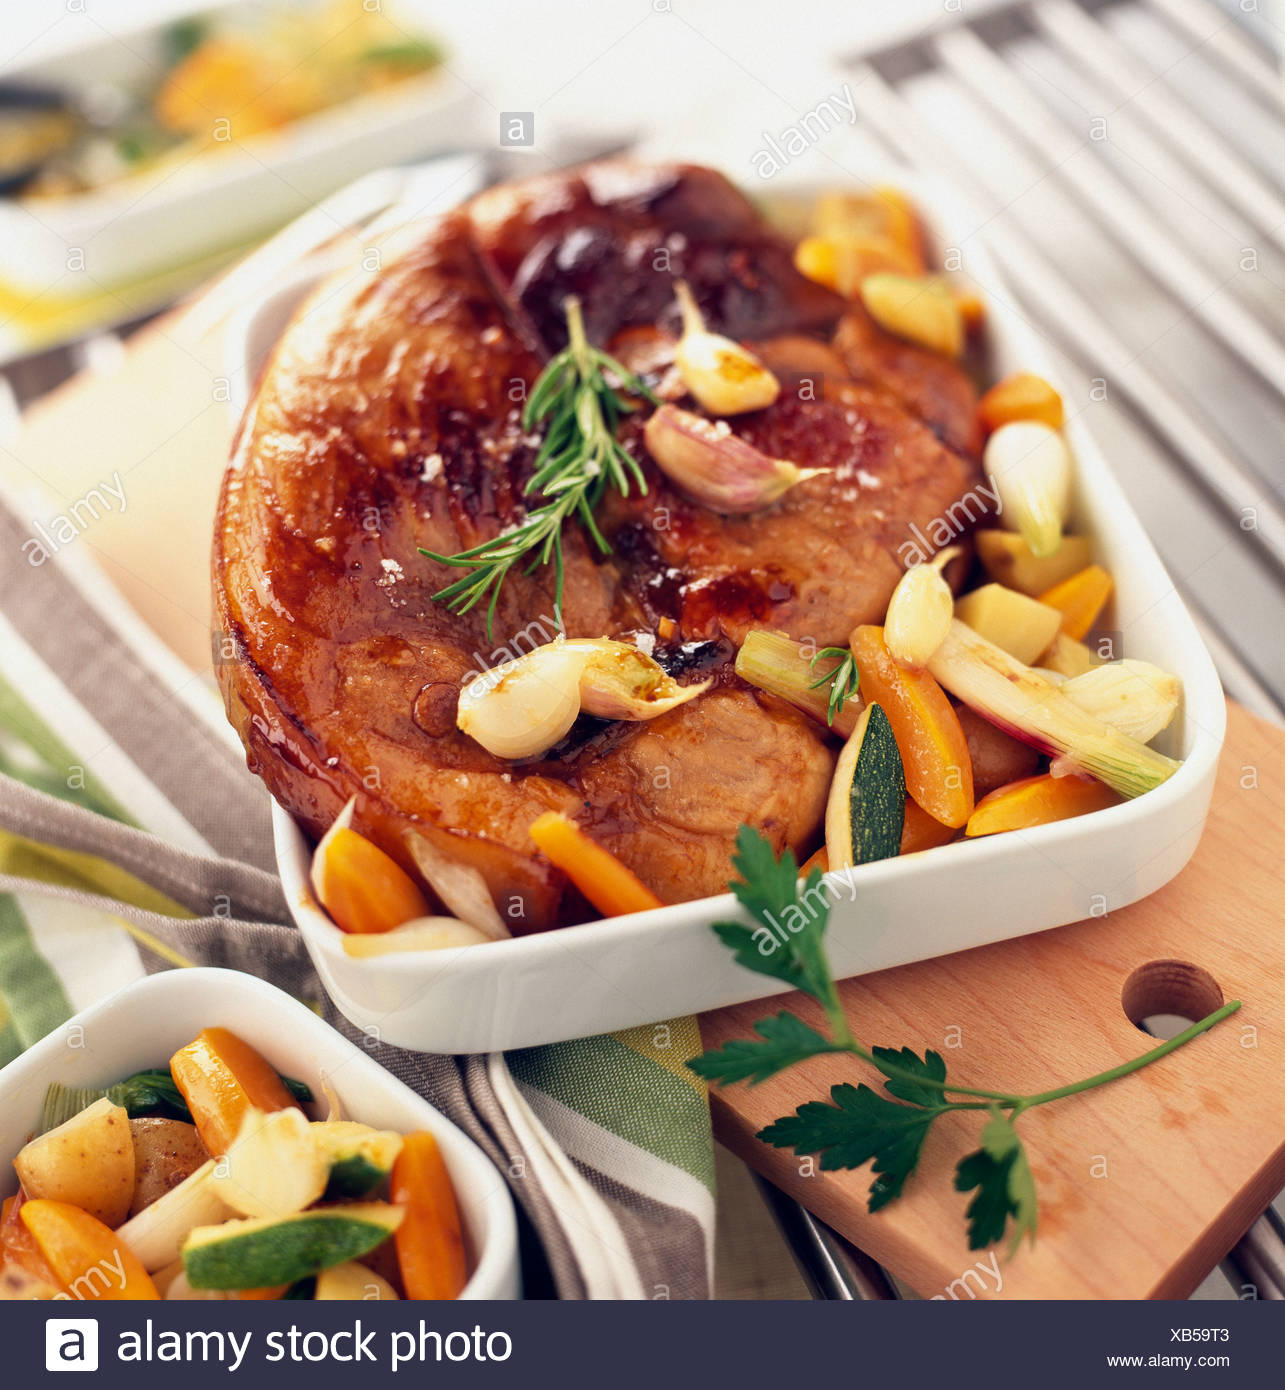 Leg of lamb with garlic and vegetables - Stock Image